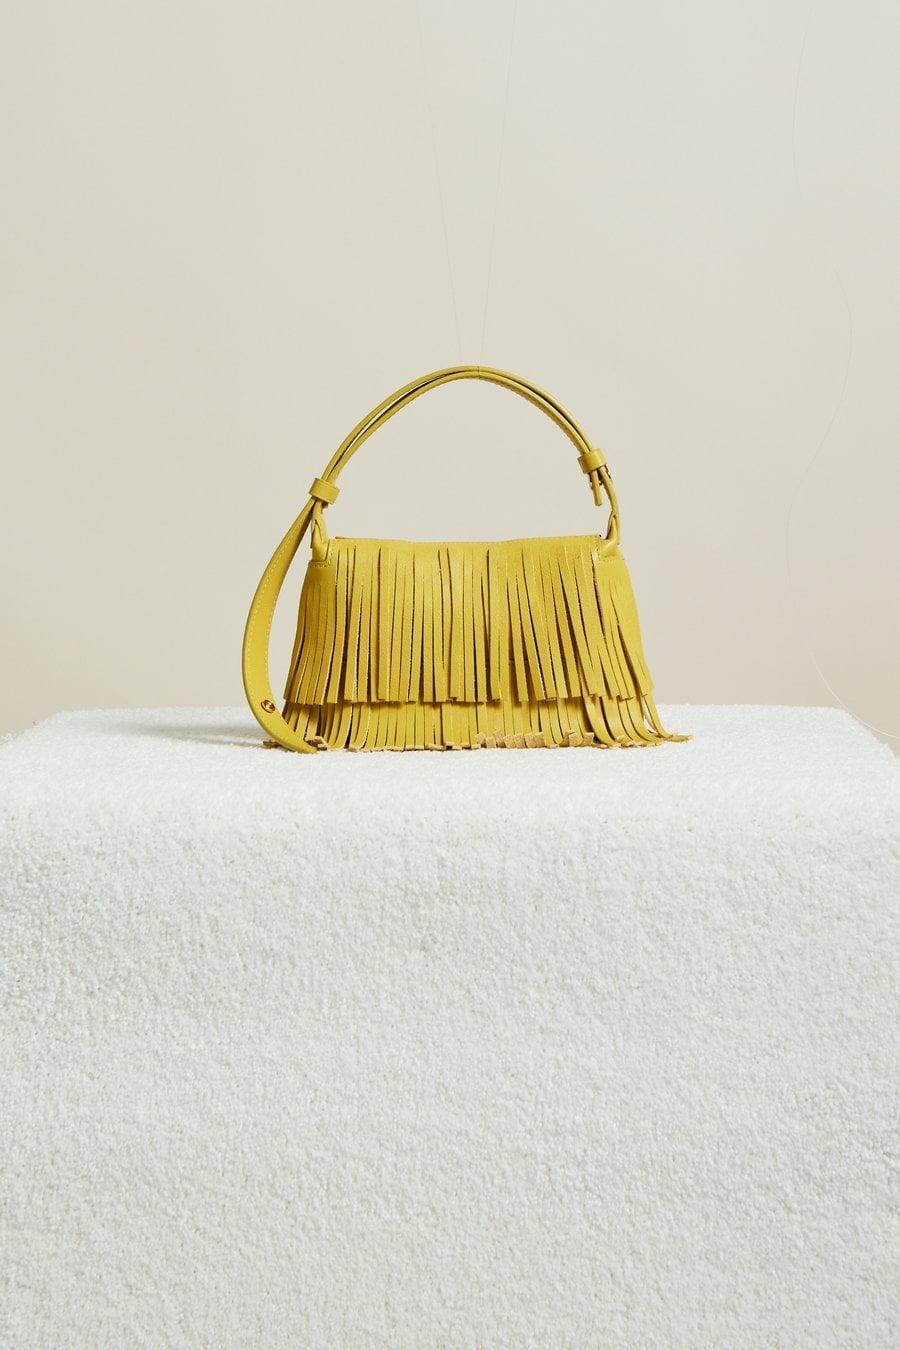 <p>There's no way you haven't seen Simon Miller's colorful bucket bags yet. The brand is not only spotted on celebrities and influencers, but conserves water during production by using organic mills and ozone technology.</p> <p><strong>What We'd Buy</strong>: <span>Simon Miller Mini Puffin in Chartreuse Fringe</span> ($320)</p>